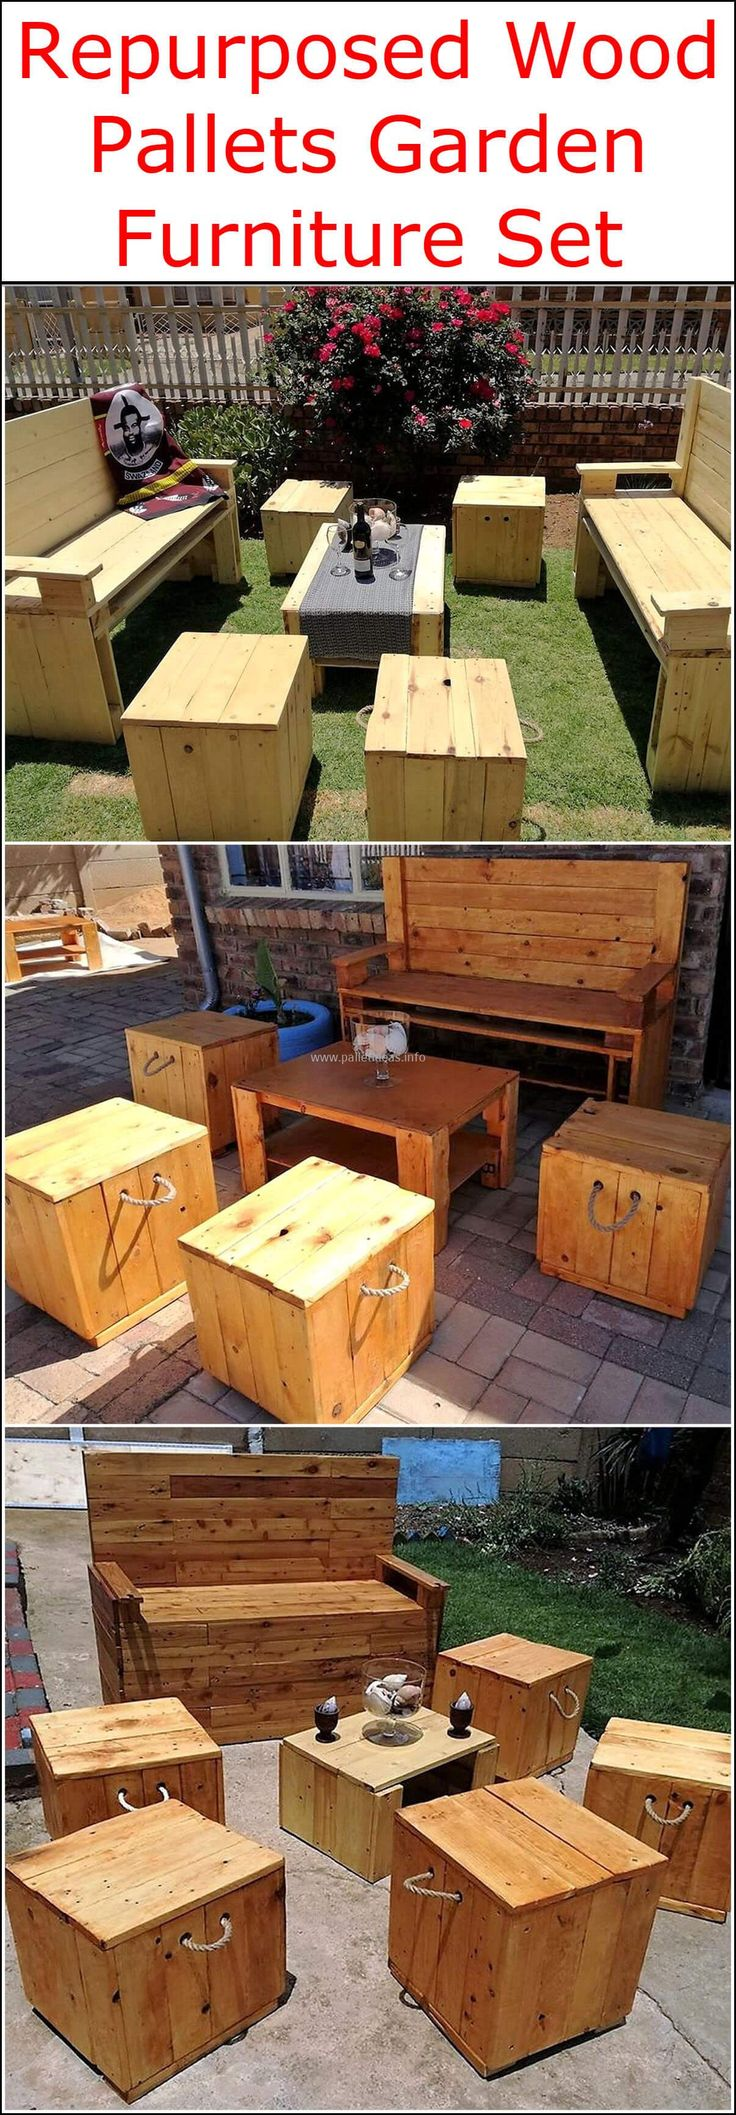 These outdoor furniture sets include stylish wooden benches, with artistically crafted recycled wood pallets benches and tables. The rustic furniture items can also turn into fancy creations with the use of fancy covers, cushions, and mattress. So let's get prepared to enhance the charming appearance of your garden area beyond your imaginations.